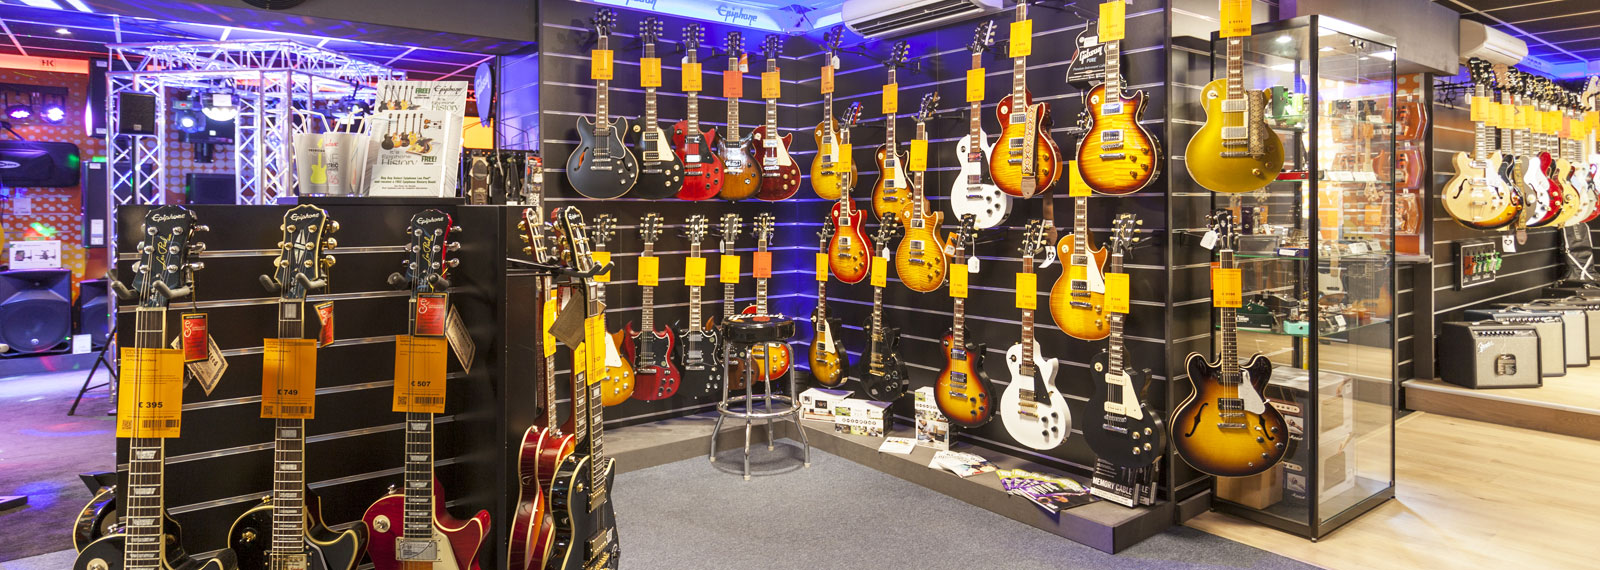 keymusic ghent music store guitar shop musical instruments. Black Bedroom Furniture Sets. Home Design Ideas